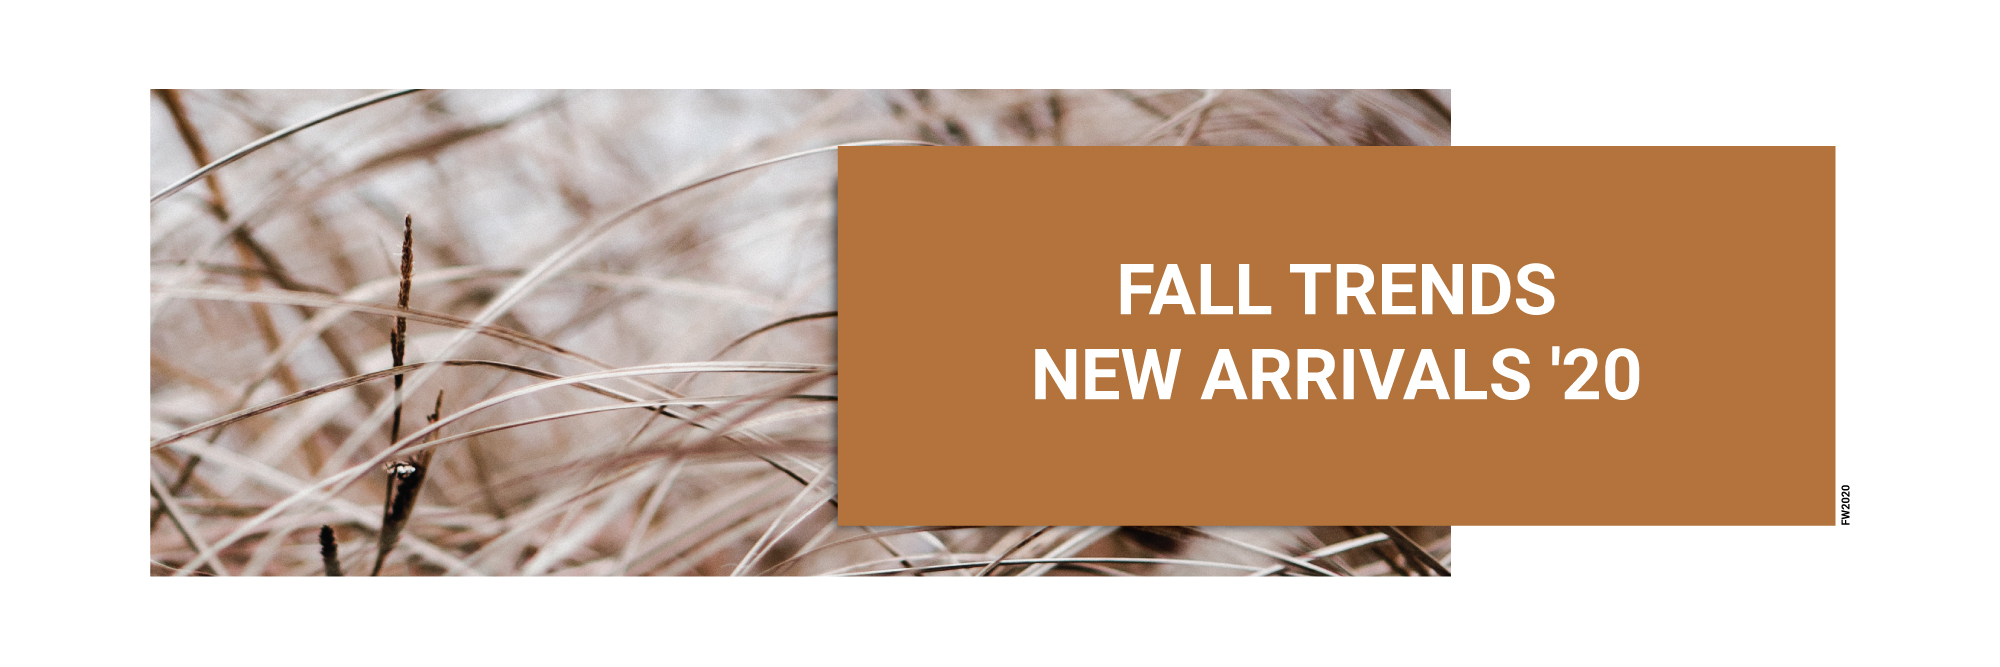 FALL TRENDS - NEW ARRIVALS '20